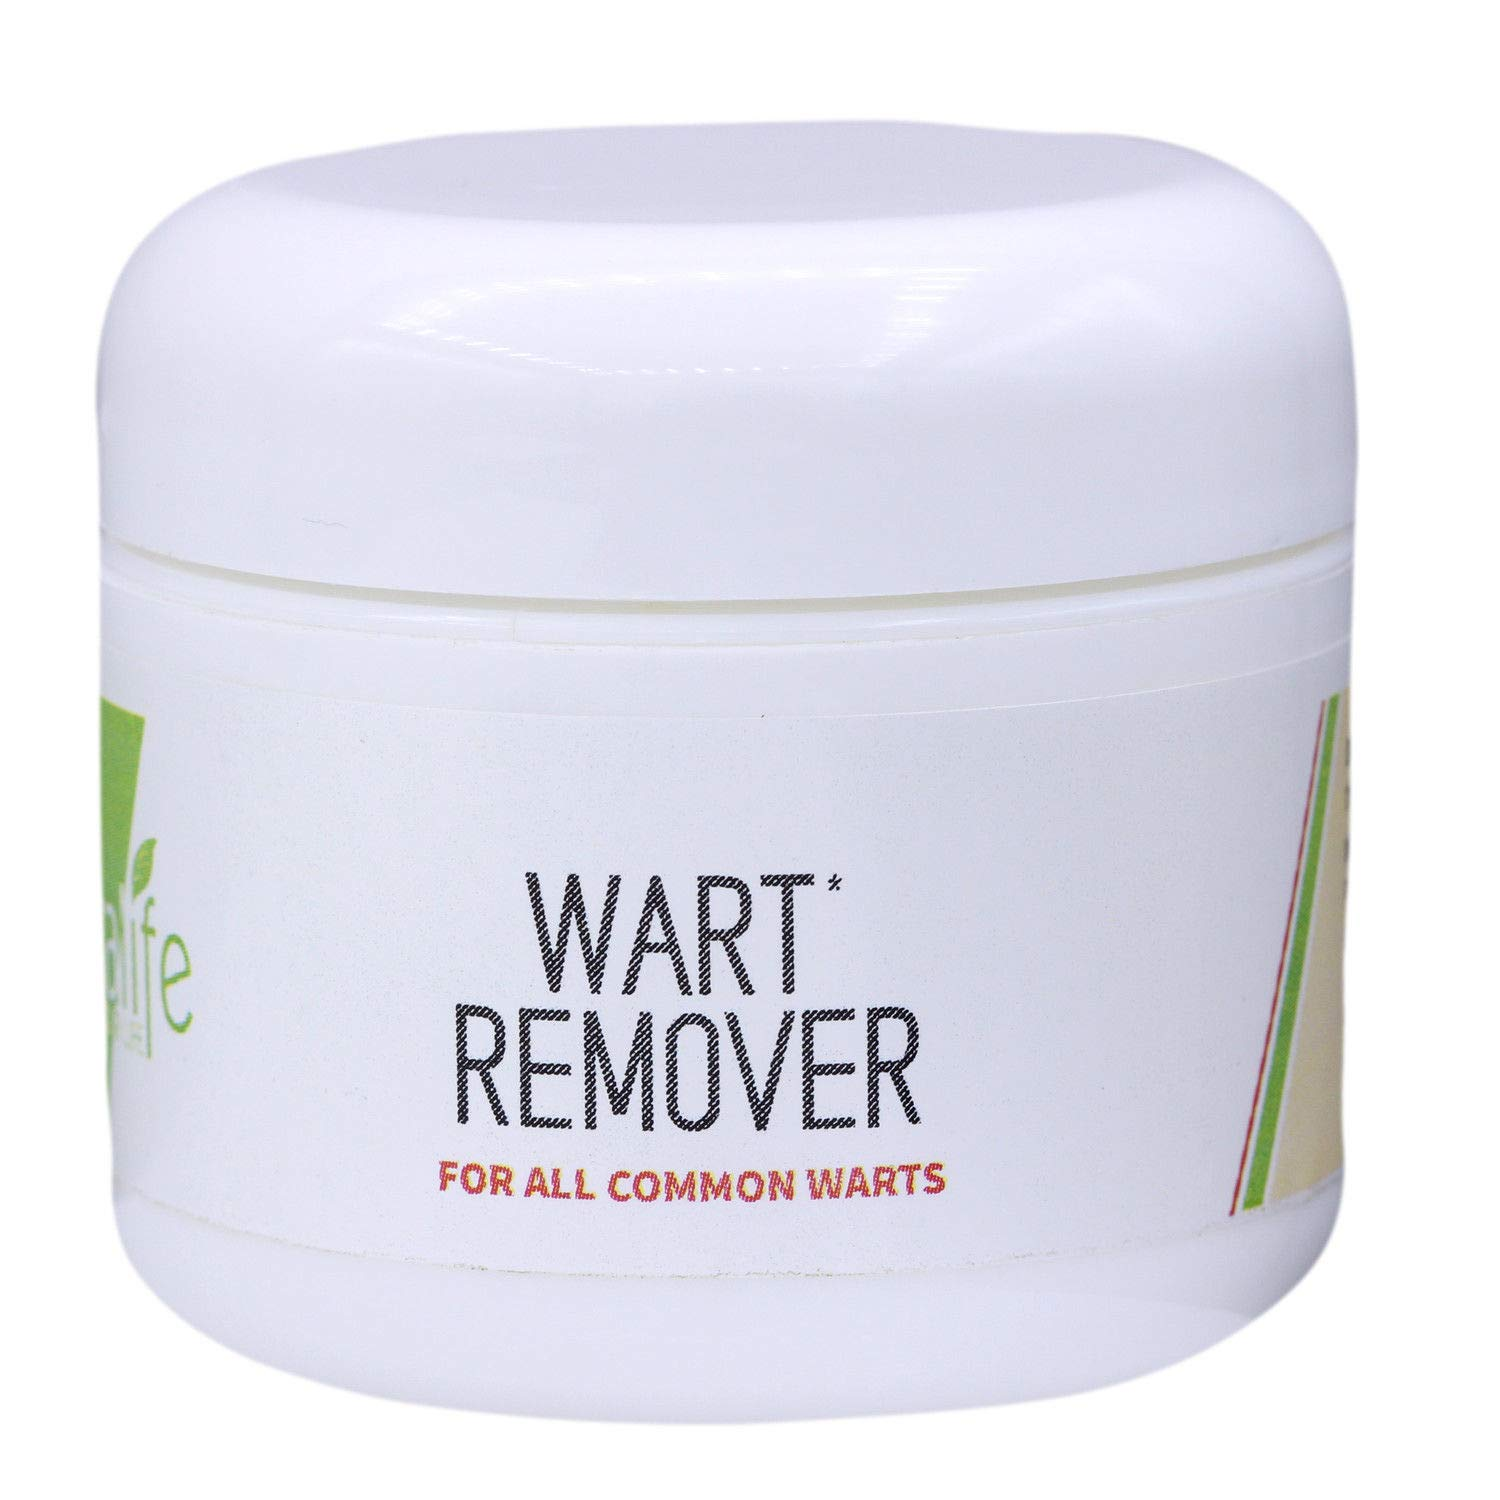 NaturaLife Wart Remover for All Common Warts - 100% Natural Ingredients - Fast Results - 100% Satisfaction by NaturaLife